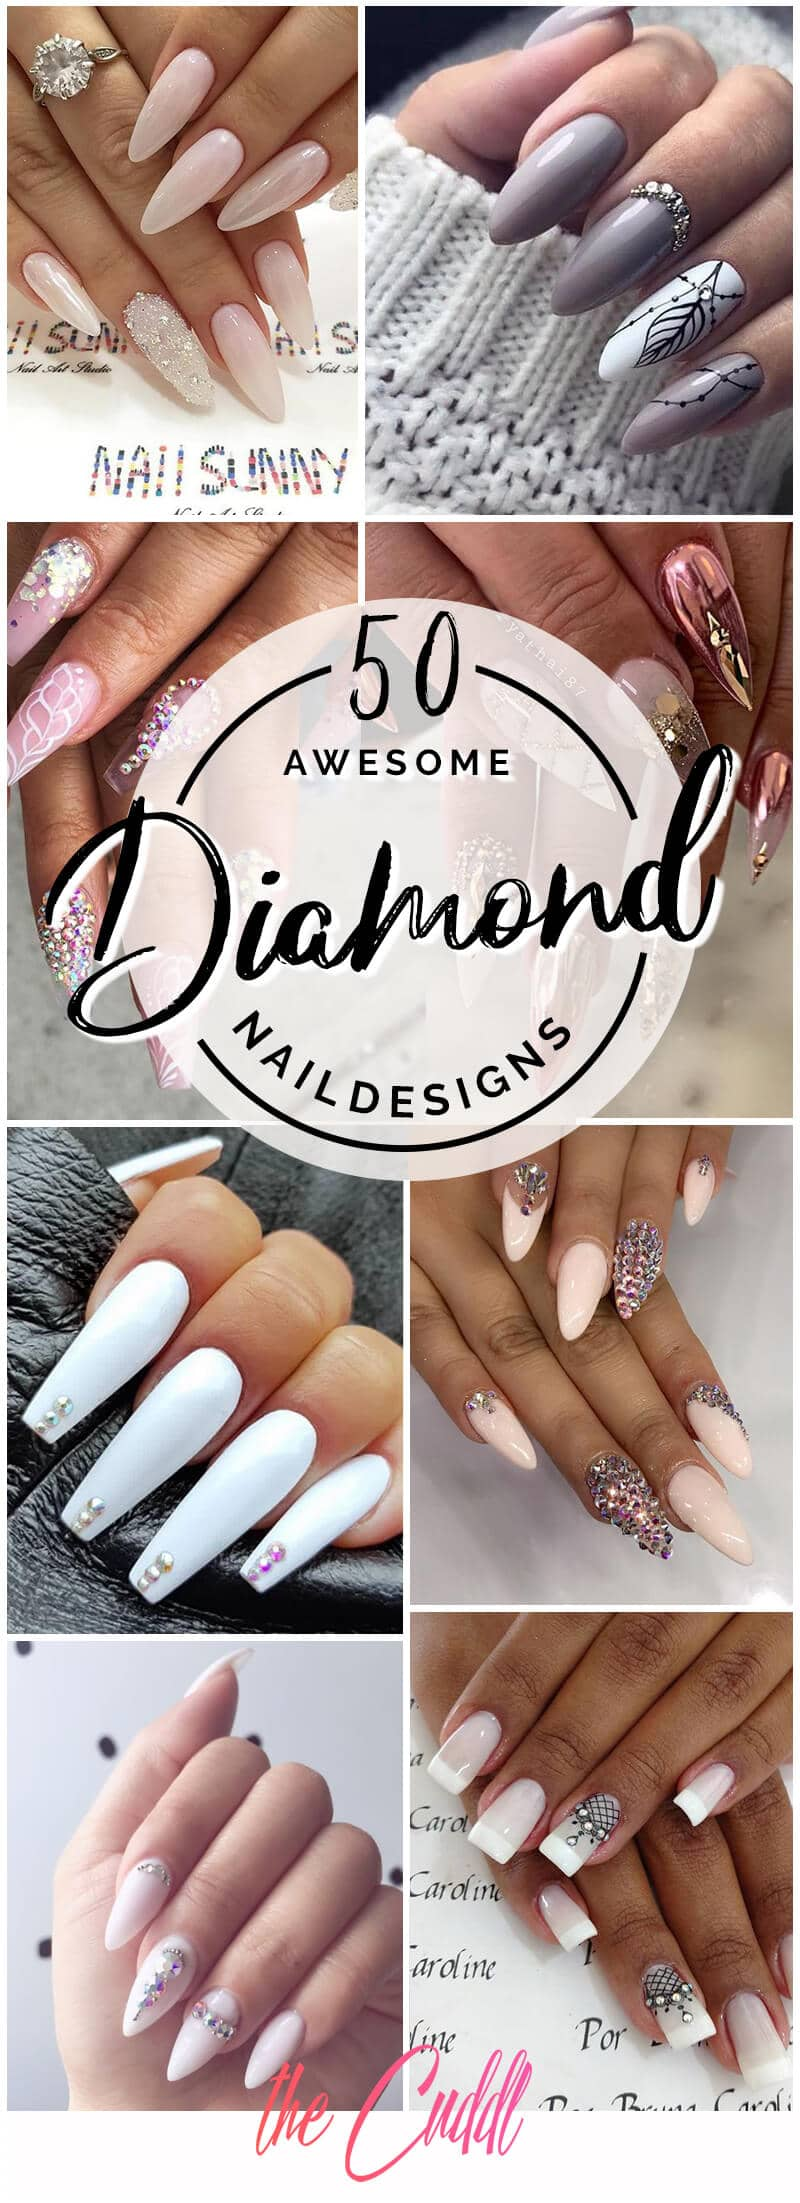 50 Classy Nail Designs with Diamonds that will Steal the Show